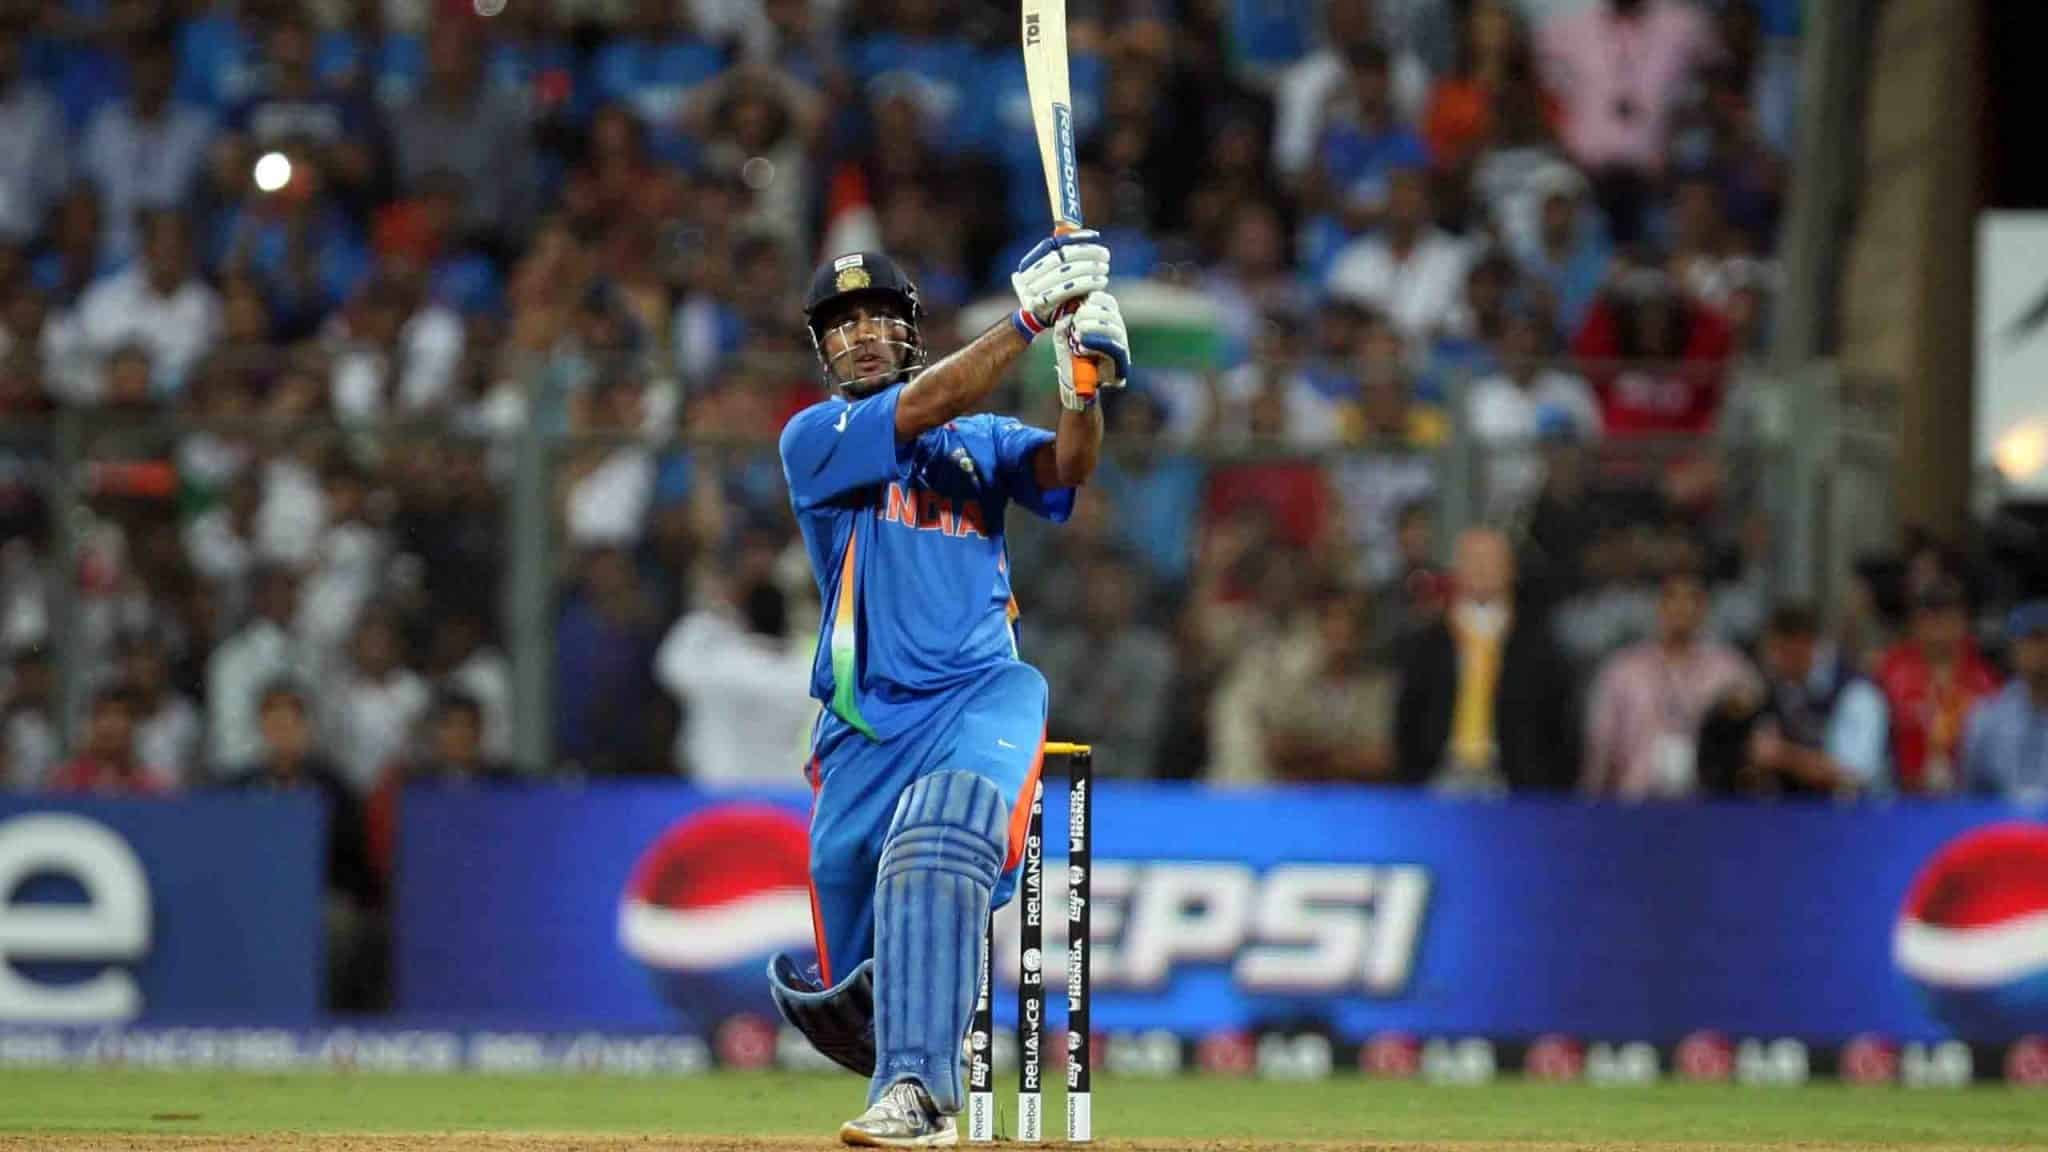 MS Dhoni has announced his retirement from international cricket